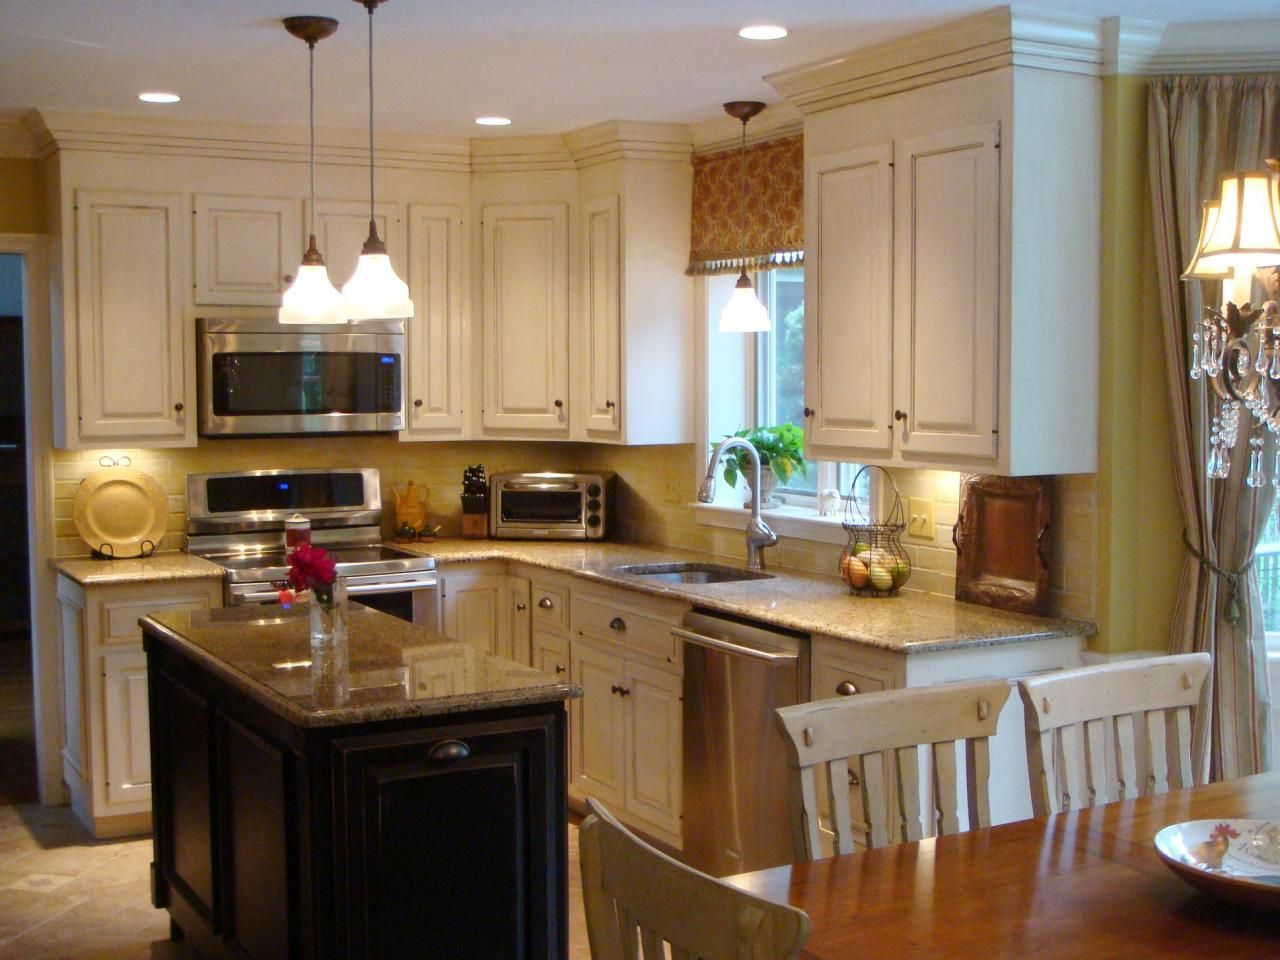 Pictures Of Kitchen Cabinets Beautiful Storage & Display Options Delectable Designer Kitchens For Sale Design Ideas